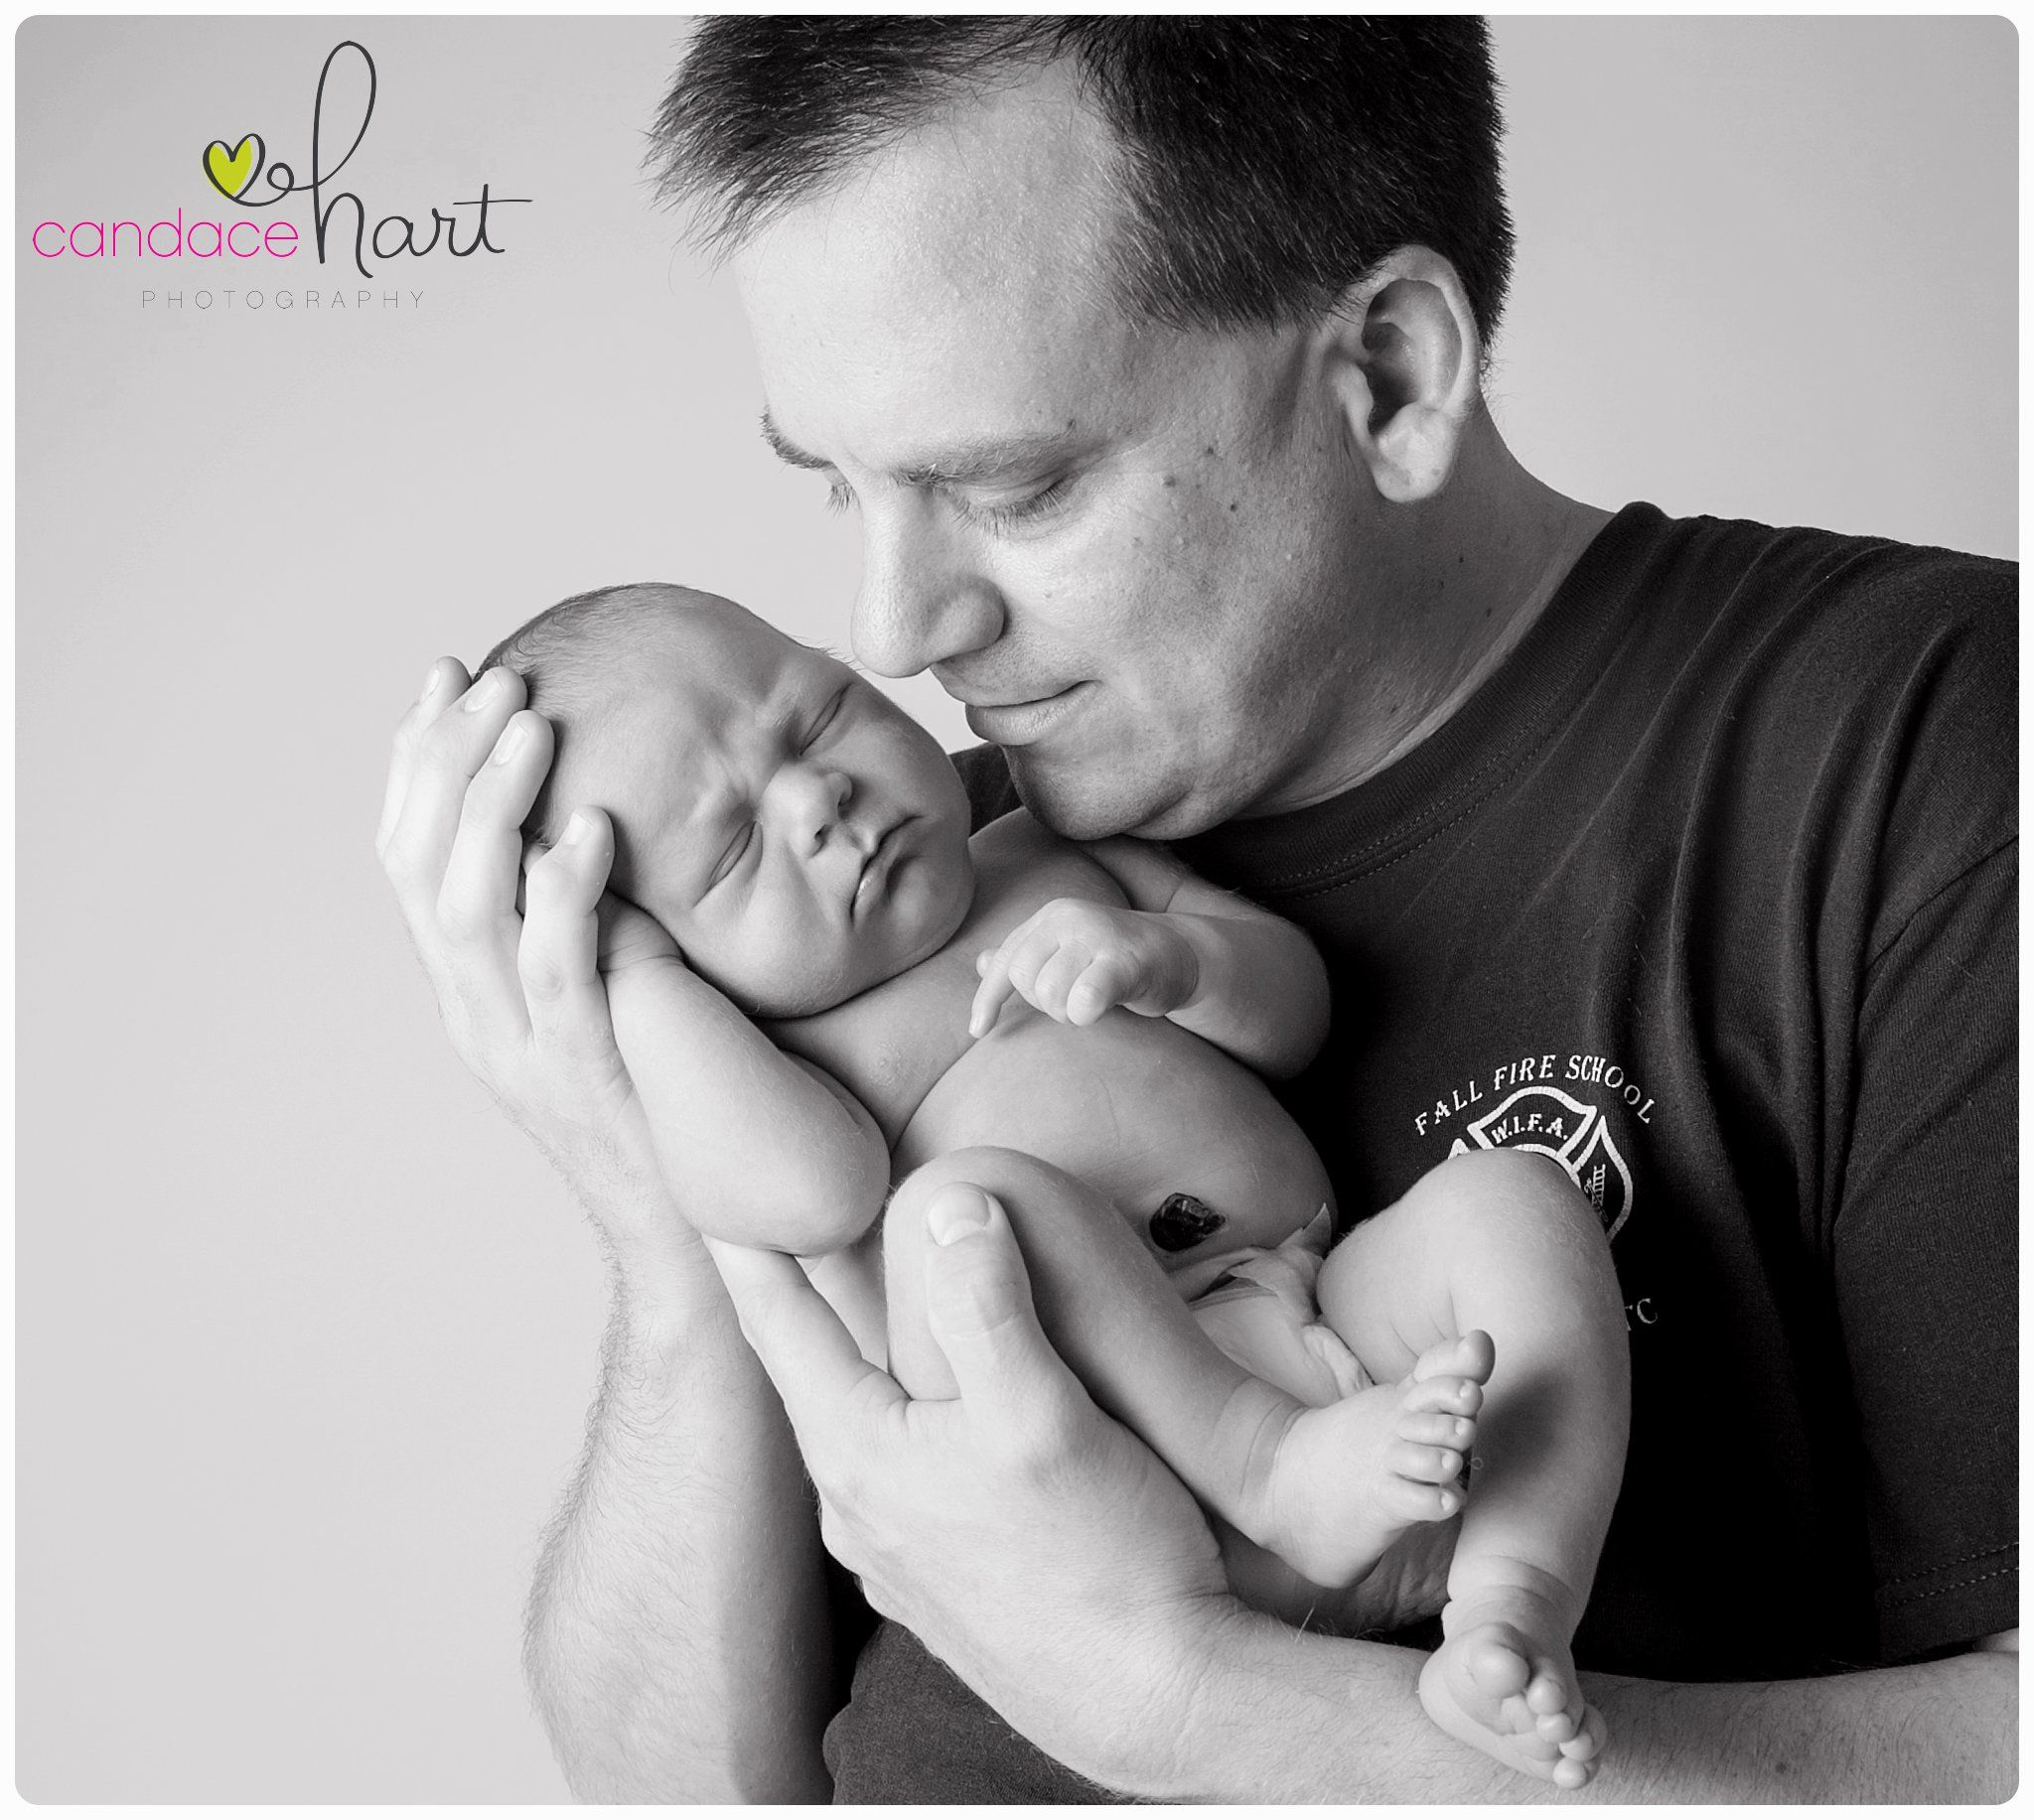 Newborn session with photographer candace hart photography